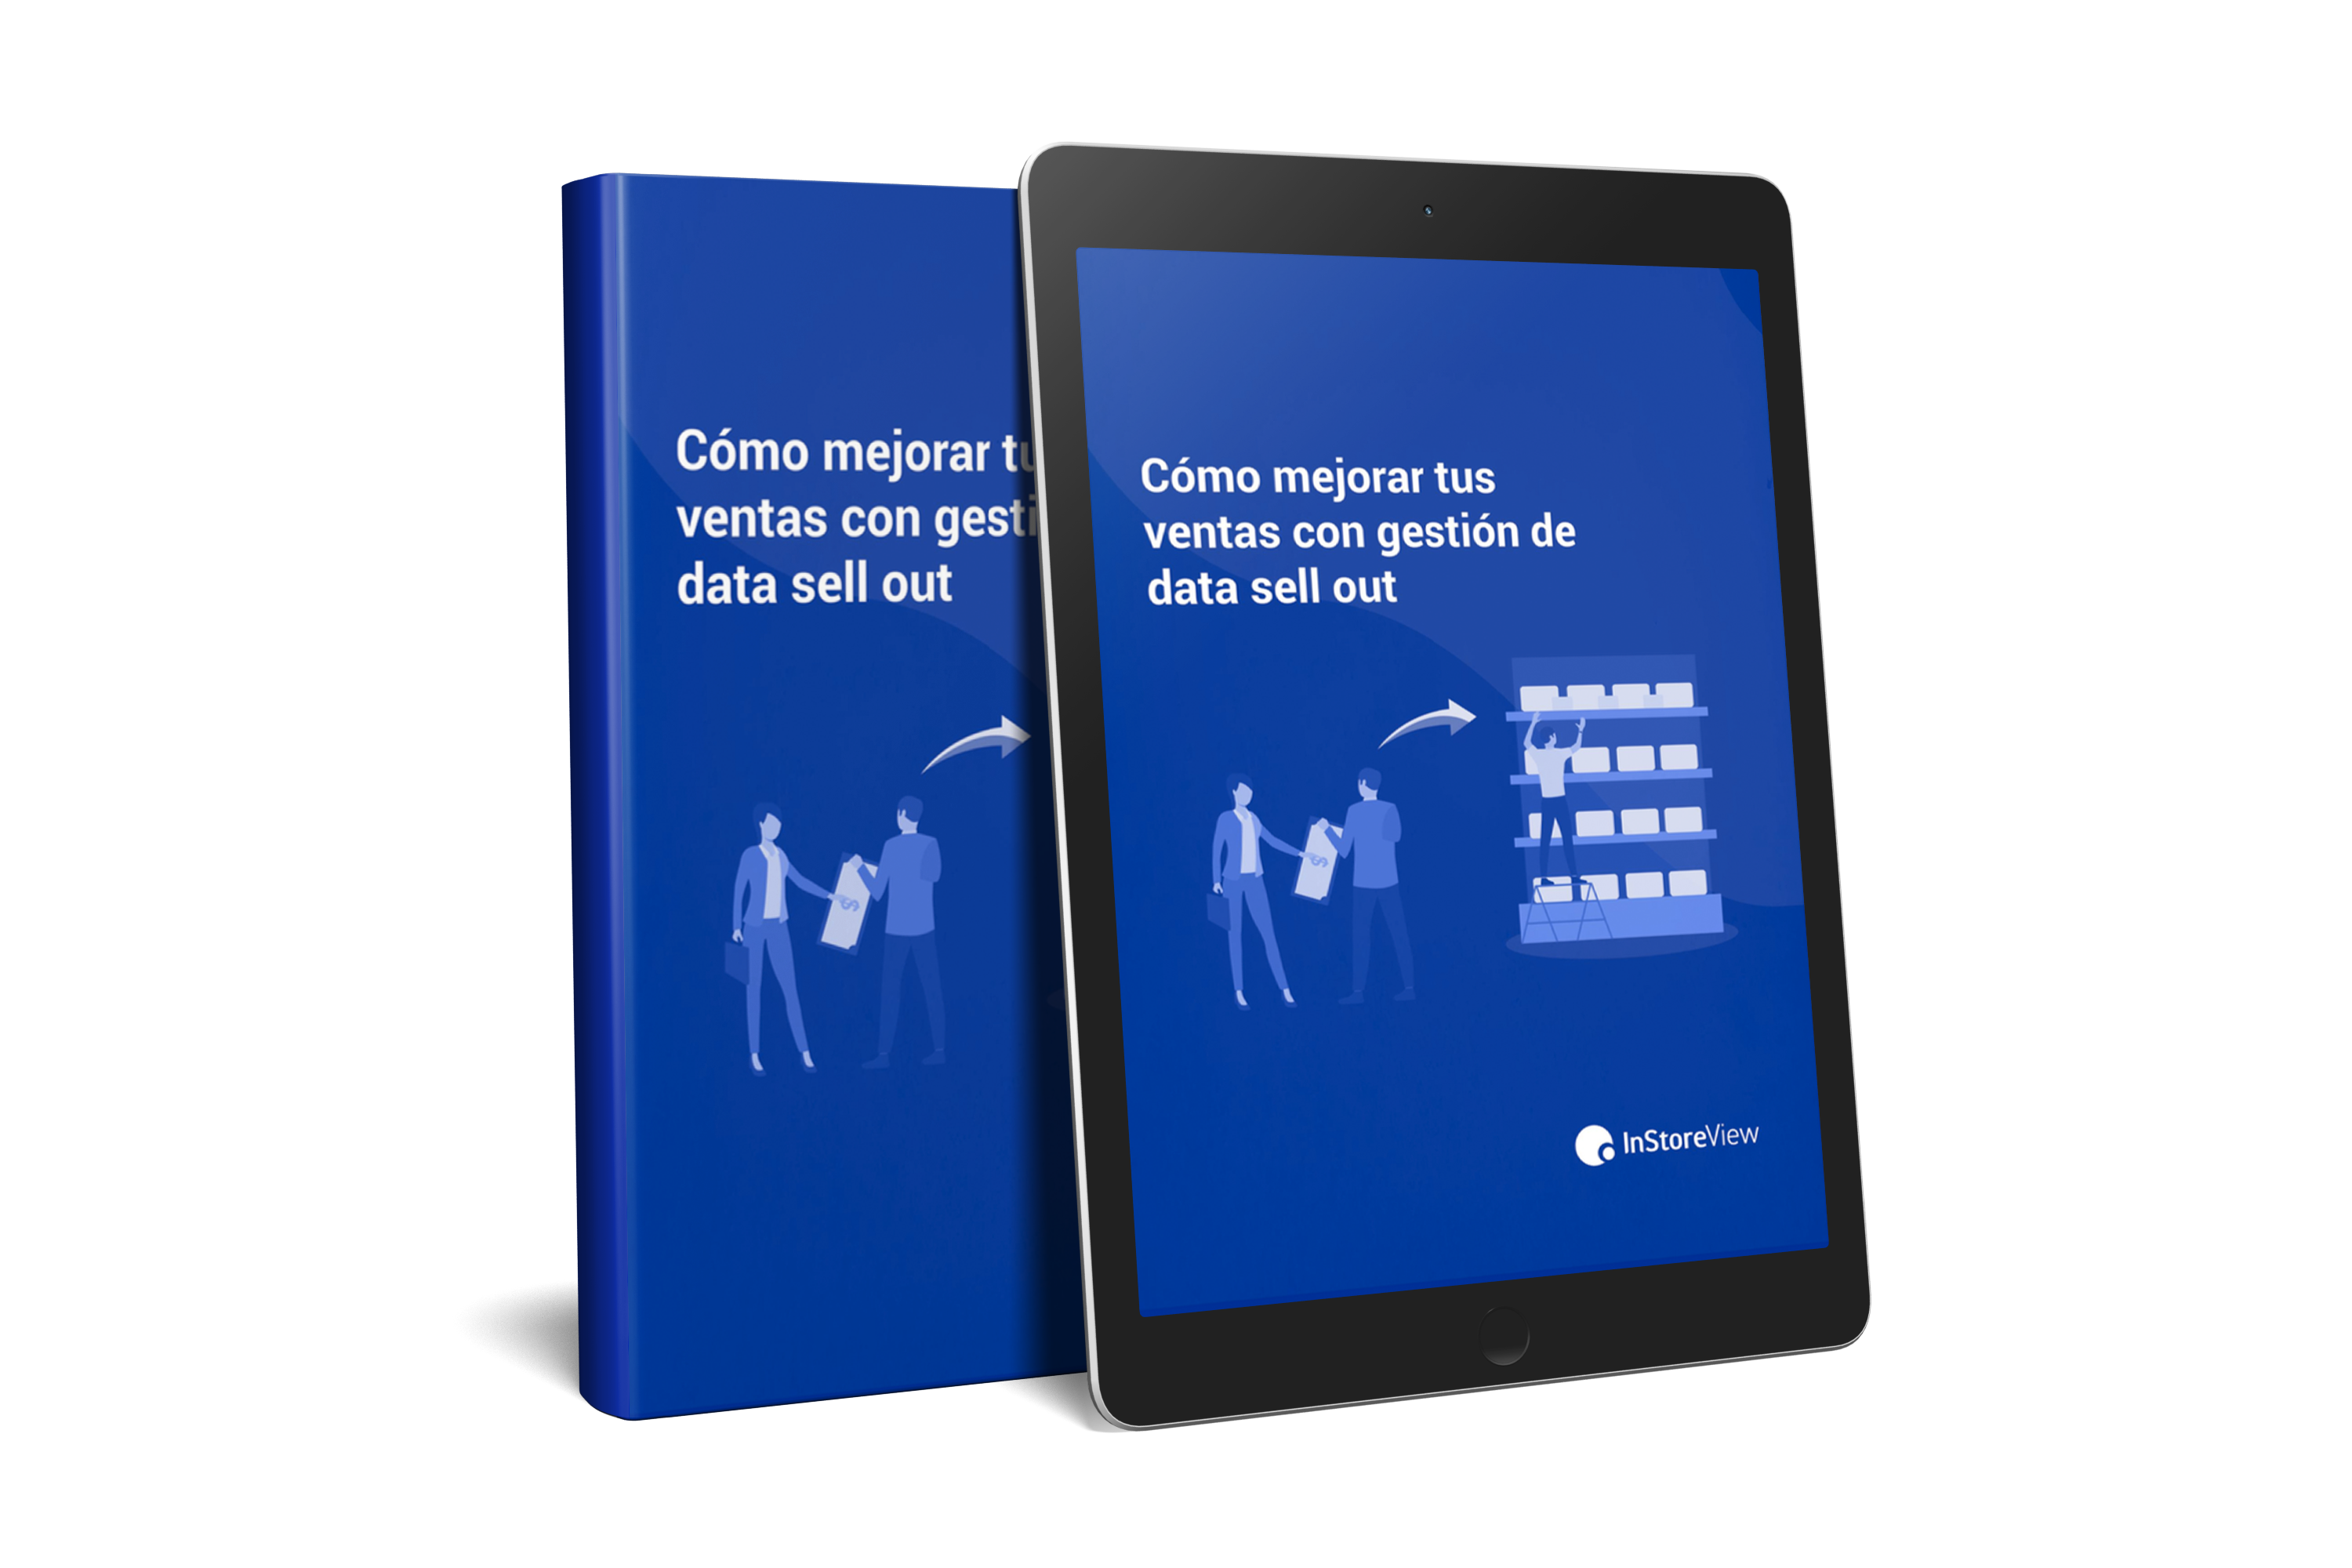 Cover ebook como mejorar tus ventas con gestion de data sell out2